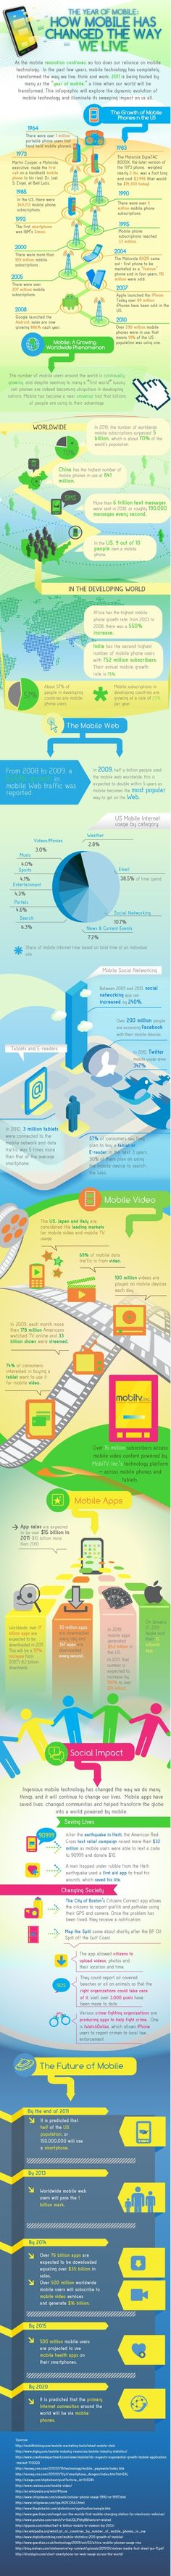 How mobile has changed the way we live #infographic #socialmedia